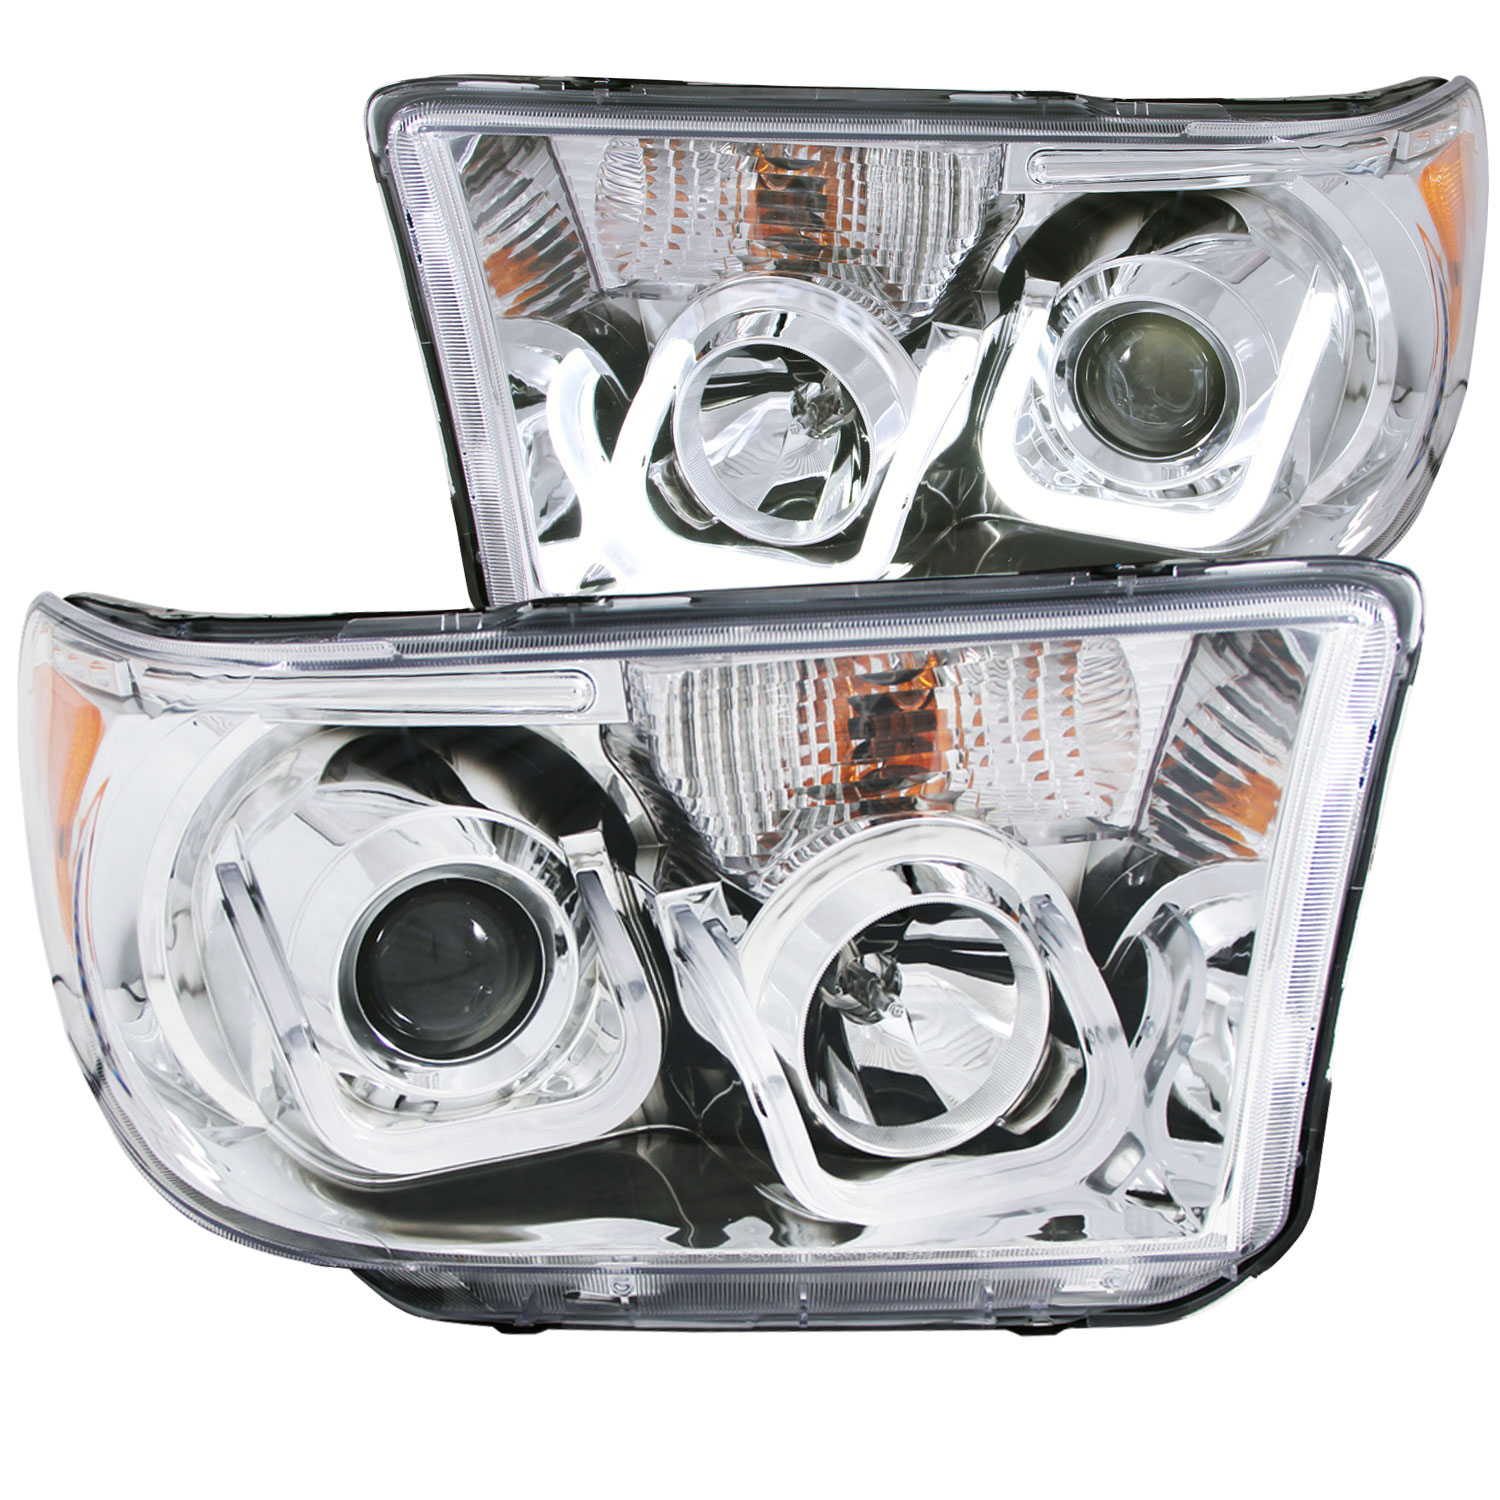 2015 tundra anzo headlights